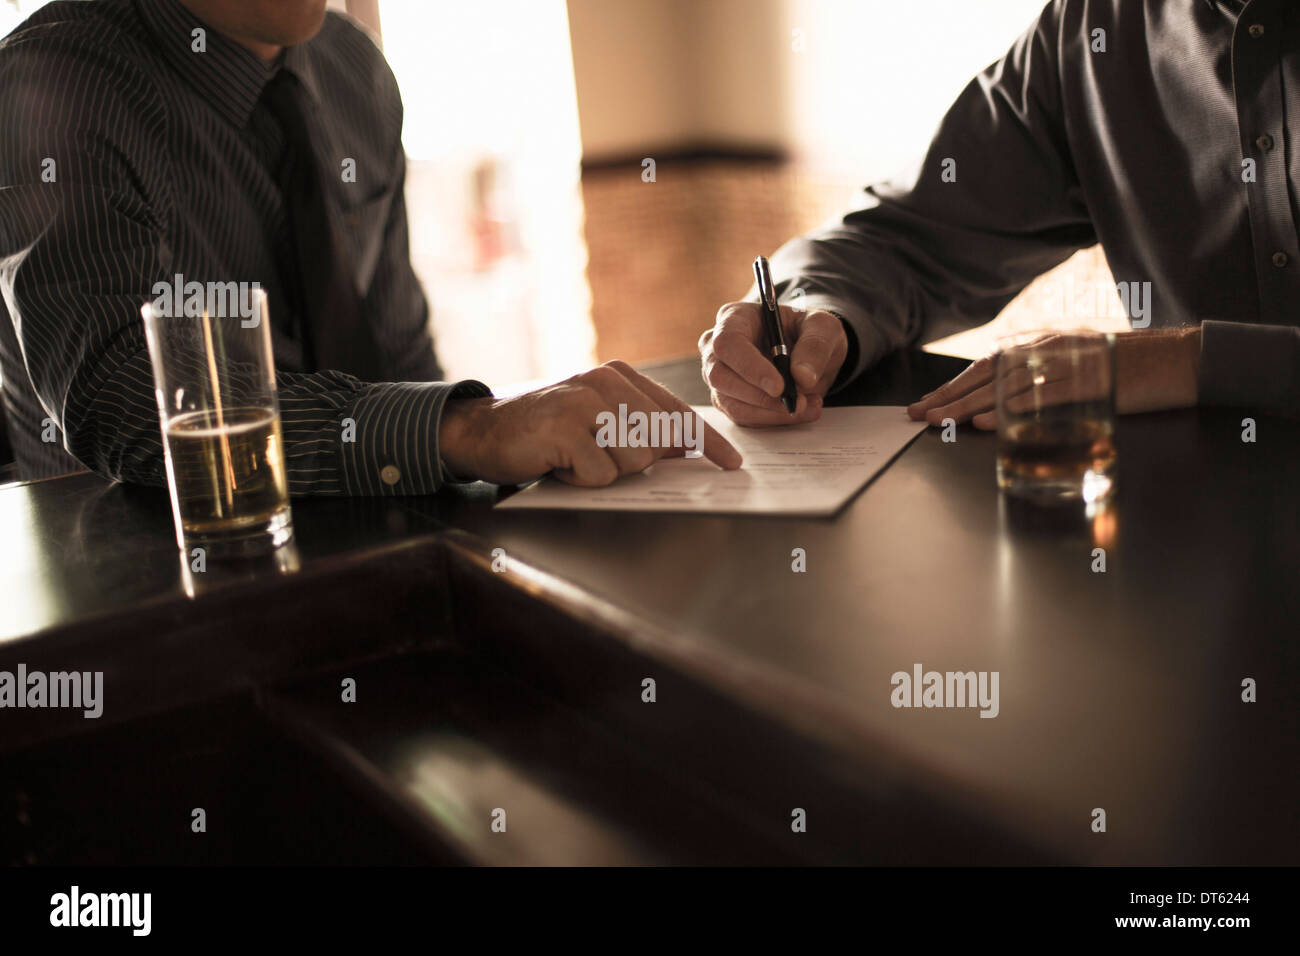 Partners signing business contract in a bar - Stock Image